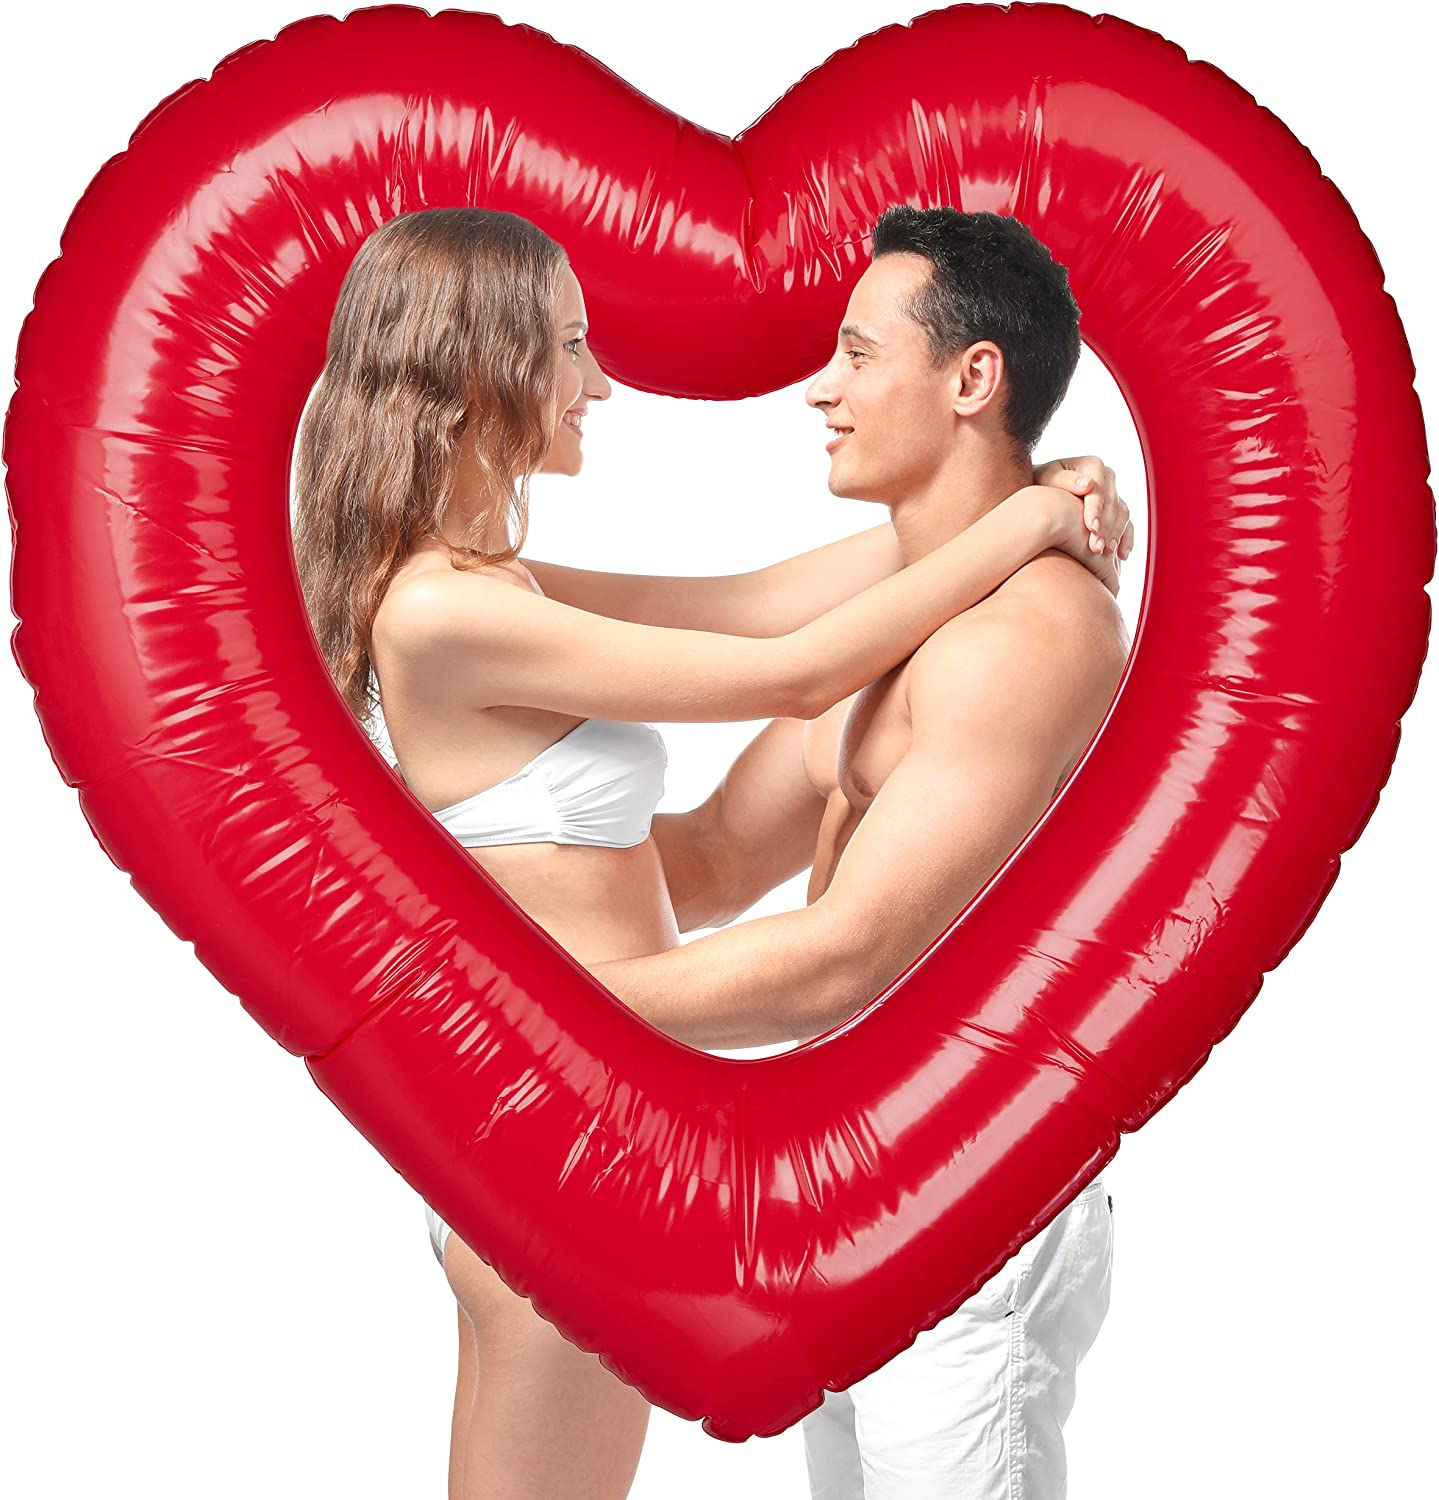 Relaxdays, Inflatable Heart-shaped Swimming Ring, For Weddings & Valentine's Day, Decor Or Gift, Red